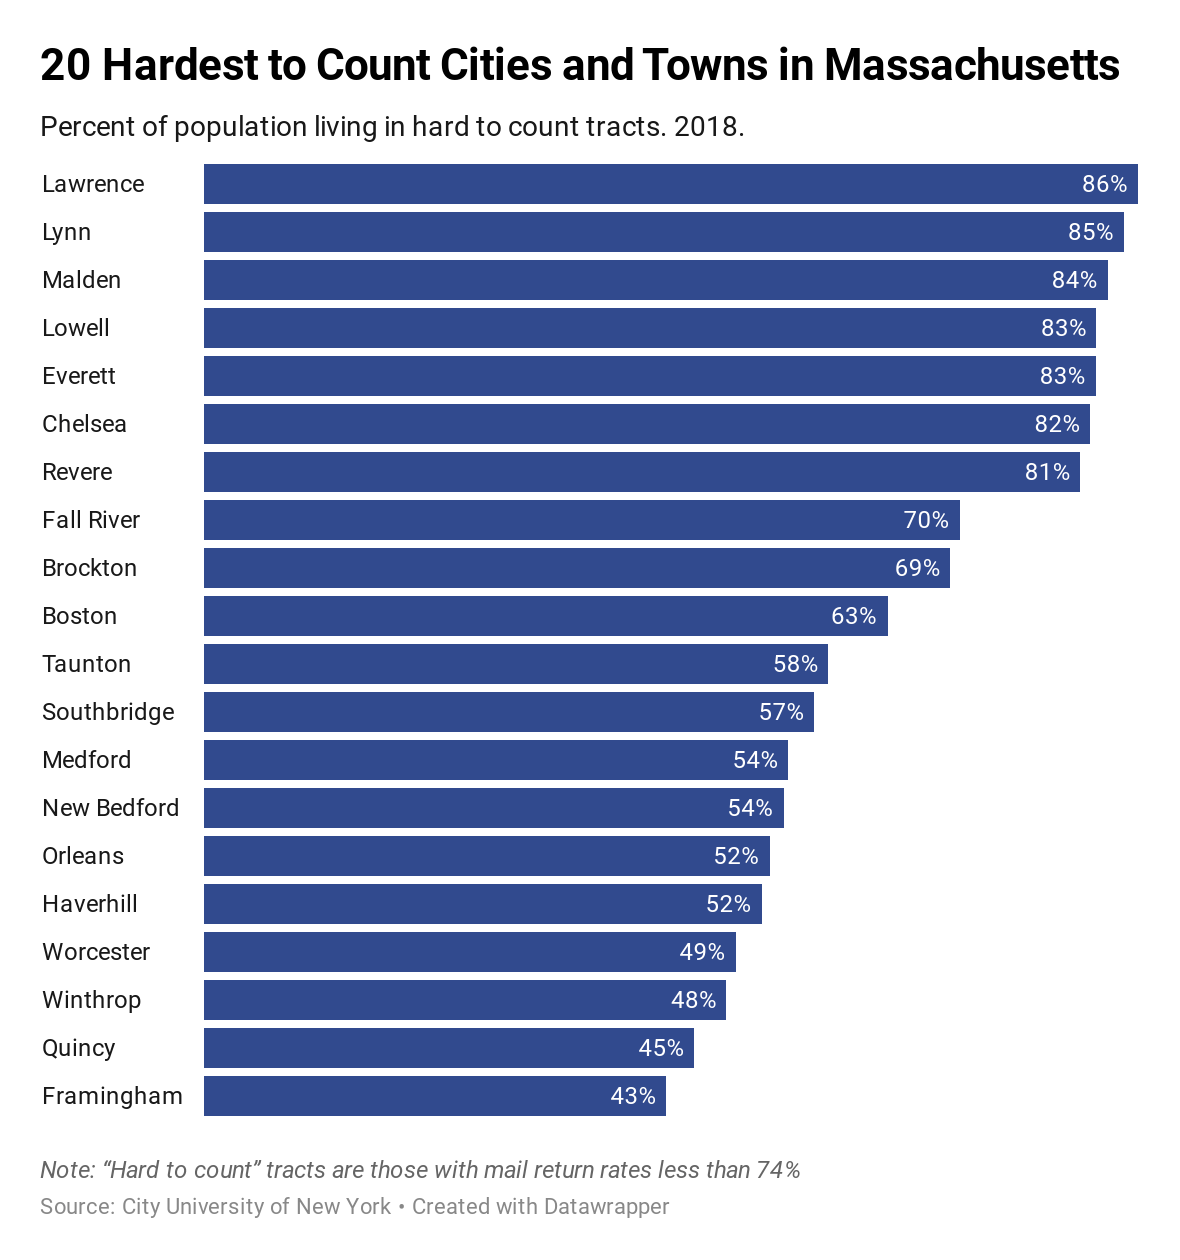 hardest to count cities in Massachusetts